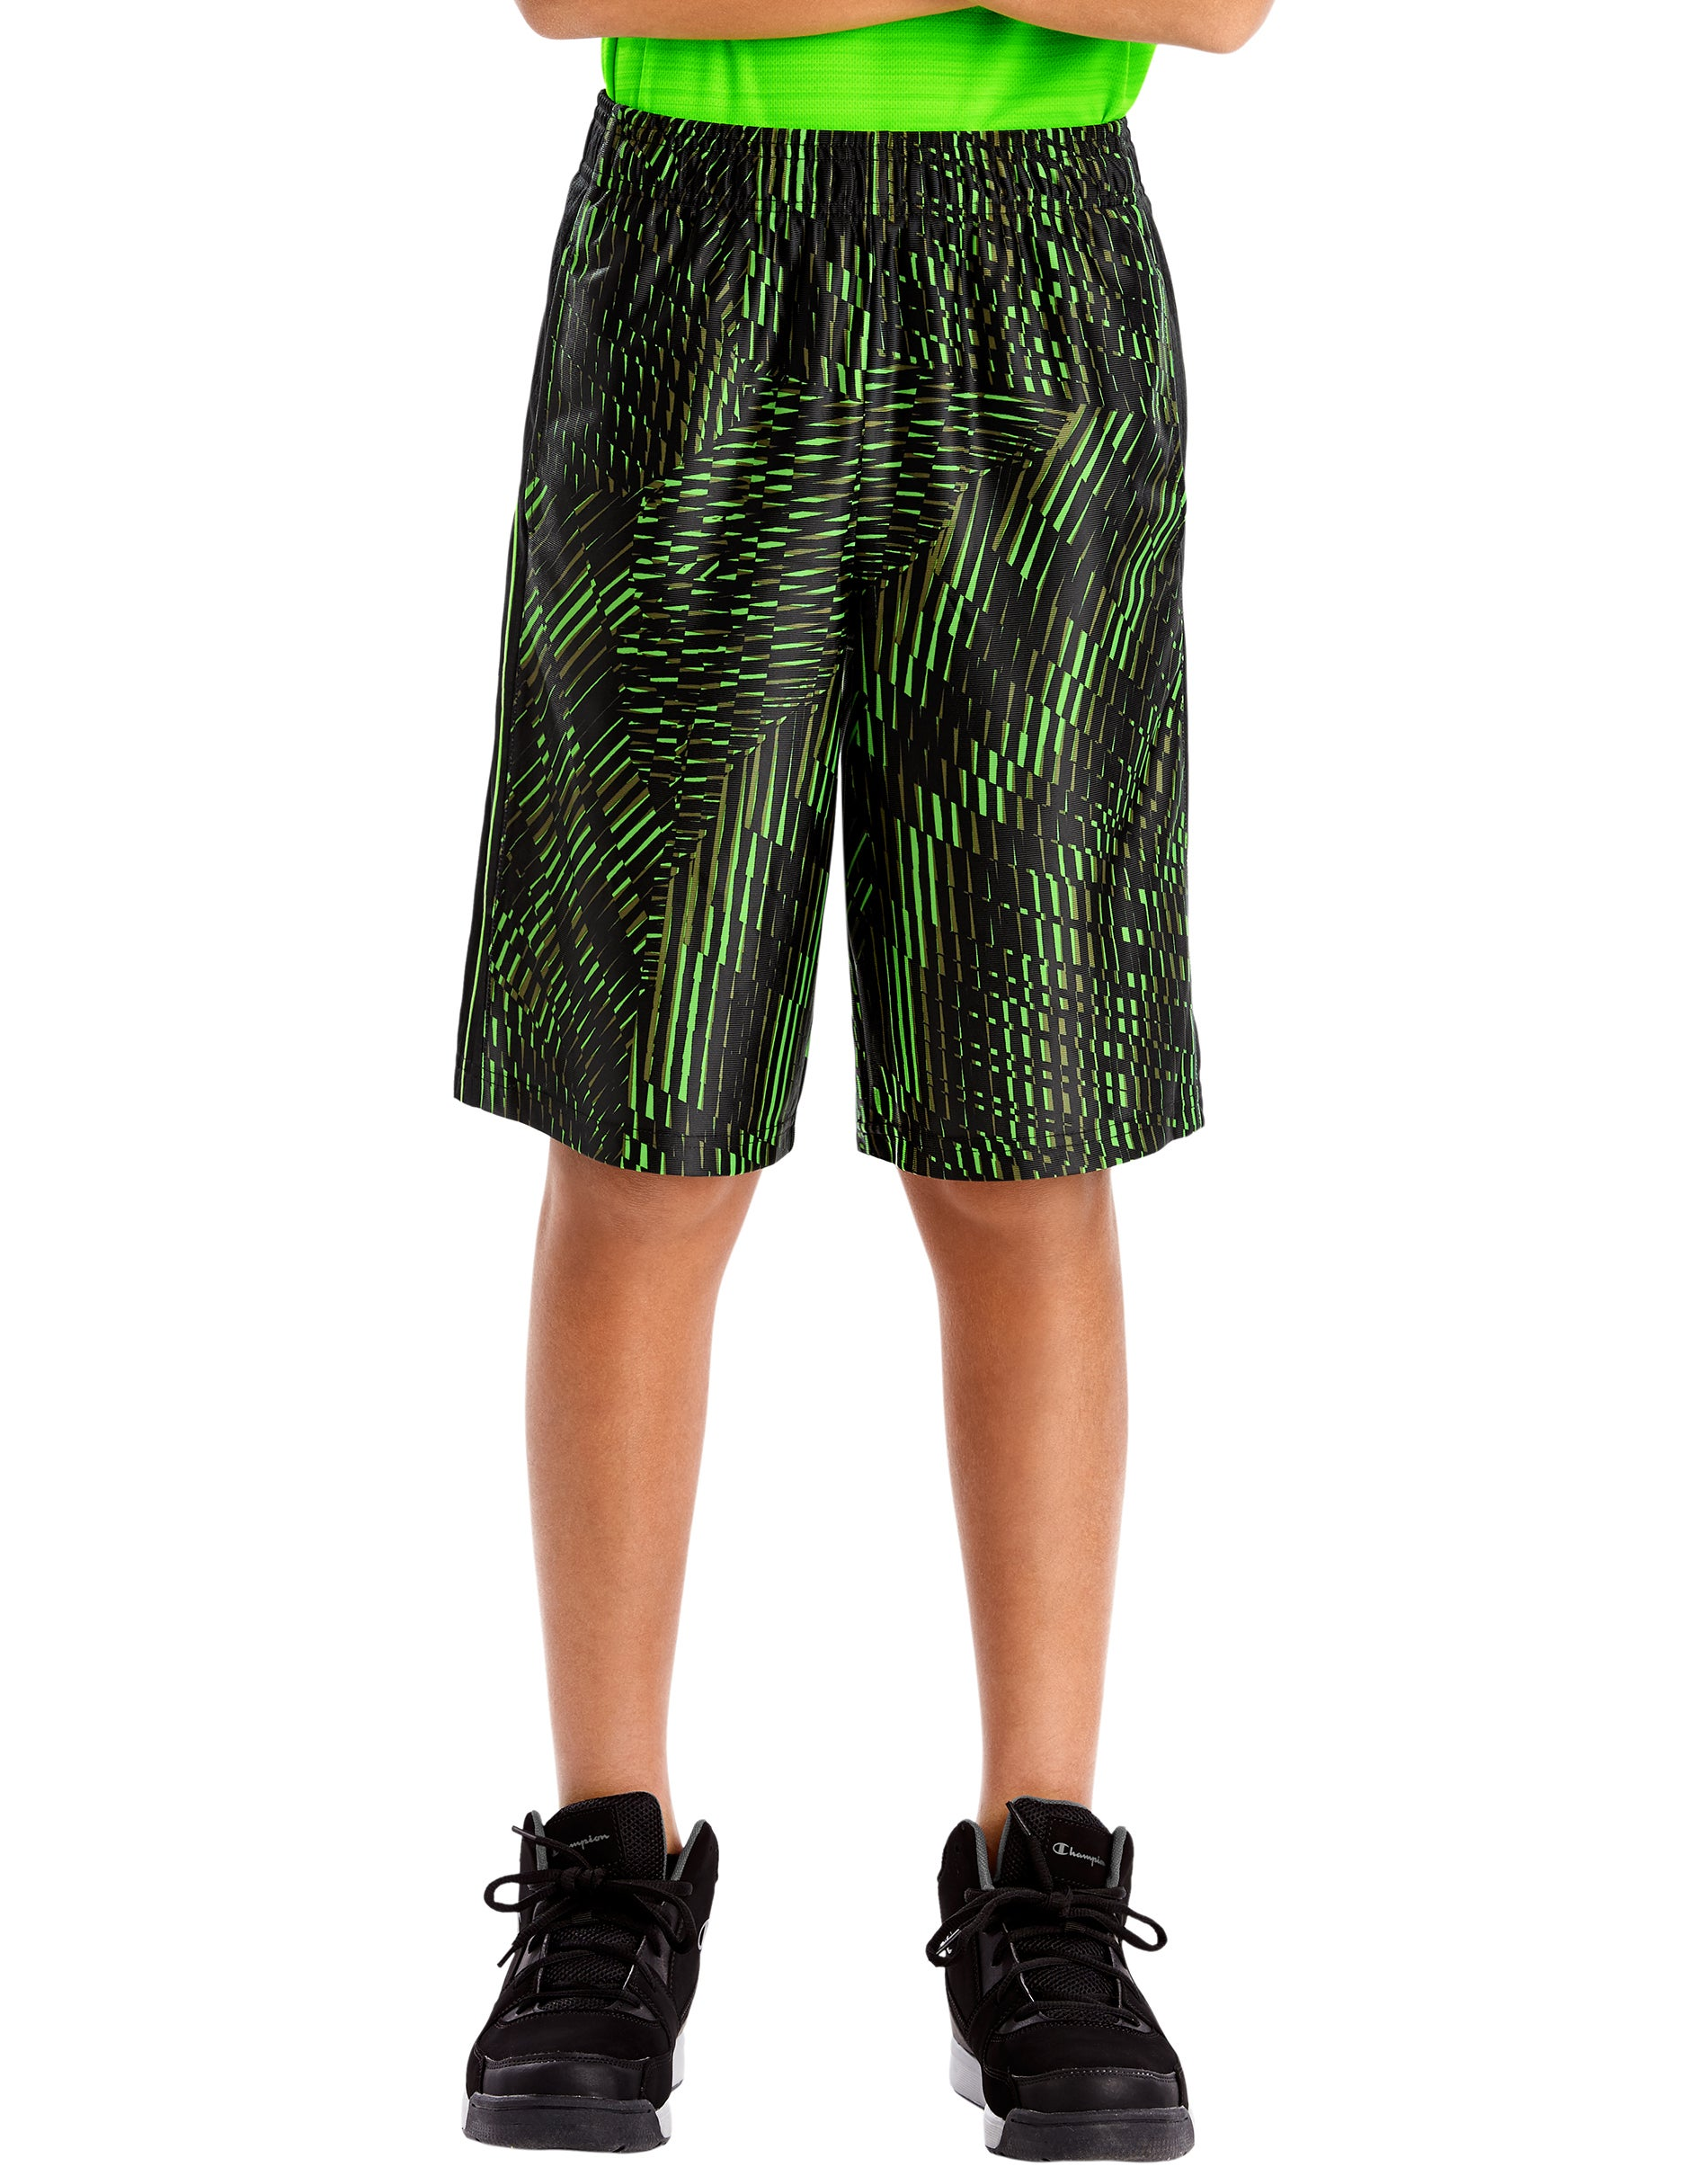 Hanes Sport Boys 9-inch Performance Shorts with Pockets